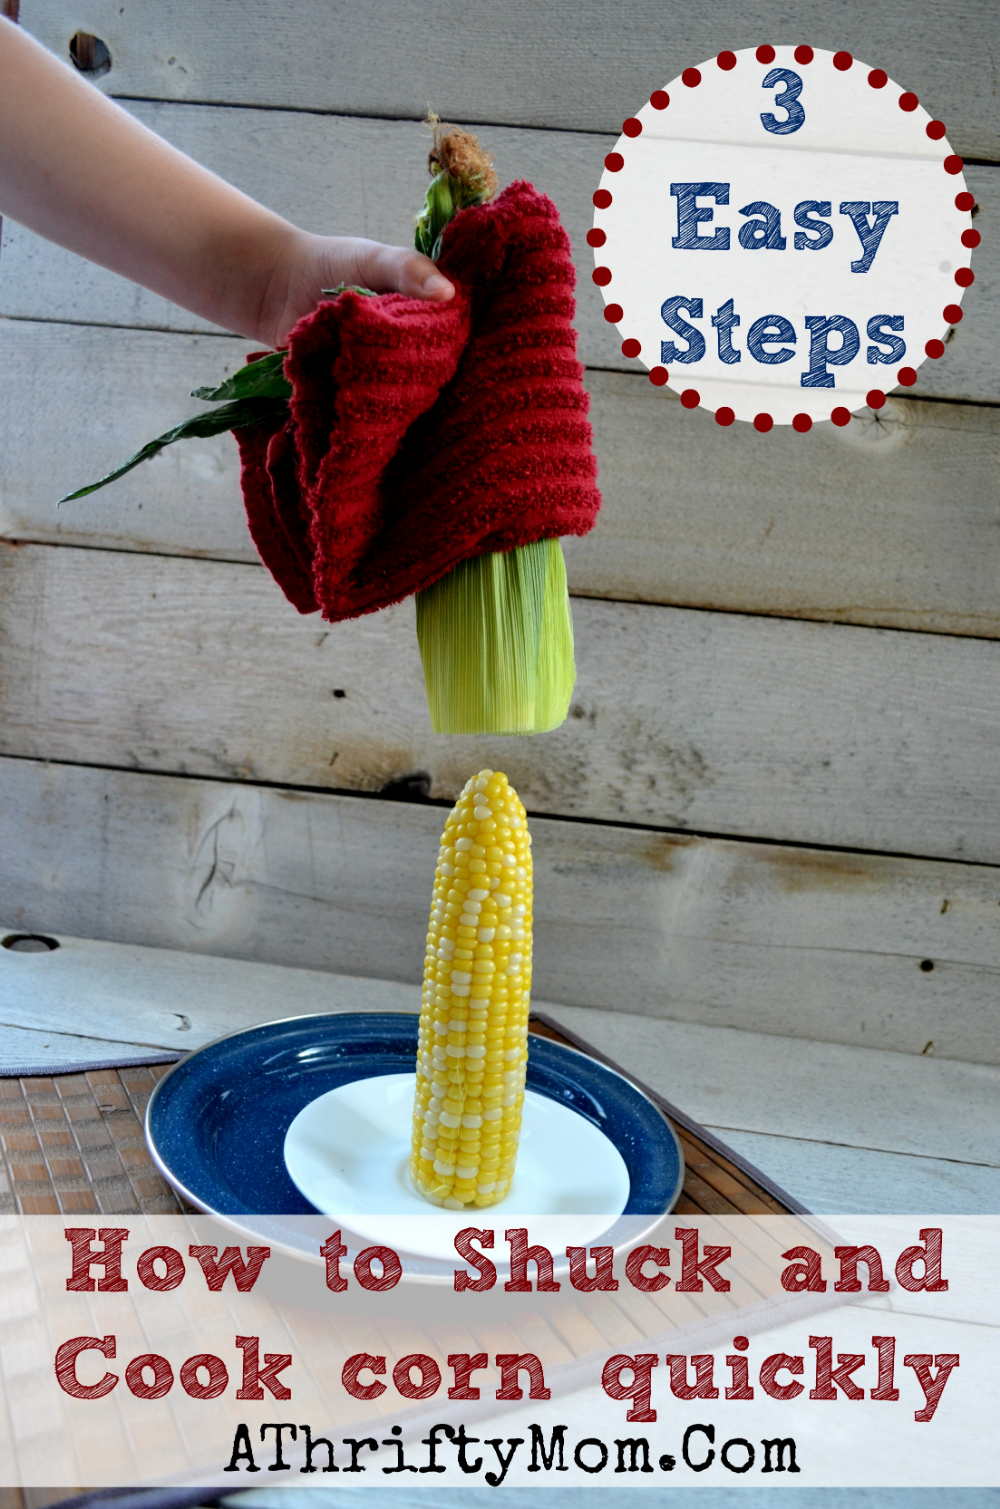 How to Shuck and Cook Corn Quickly 3 easy steps Corn